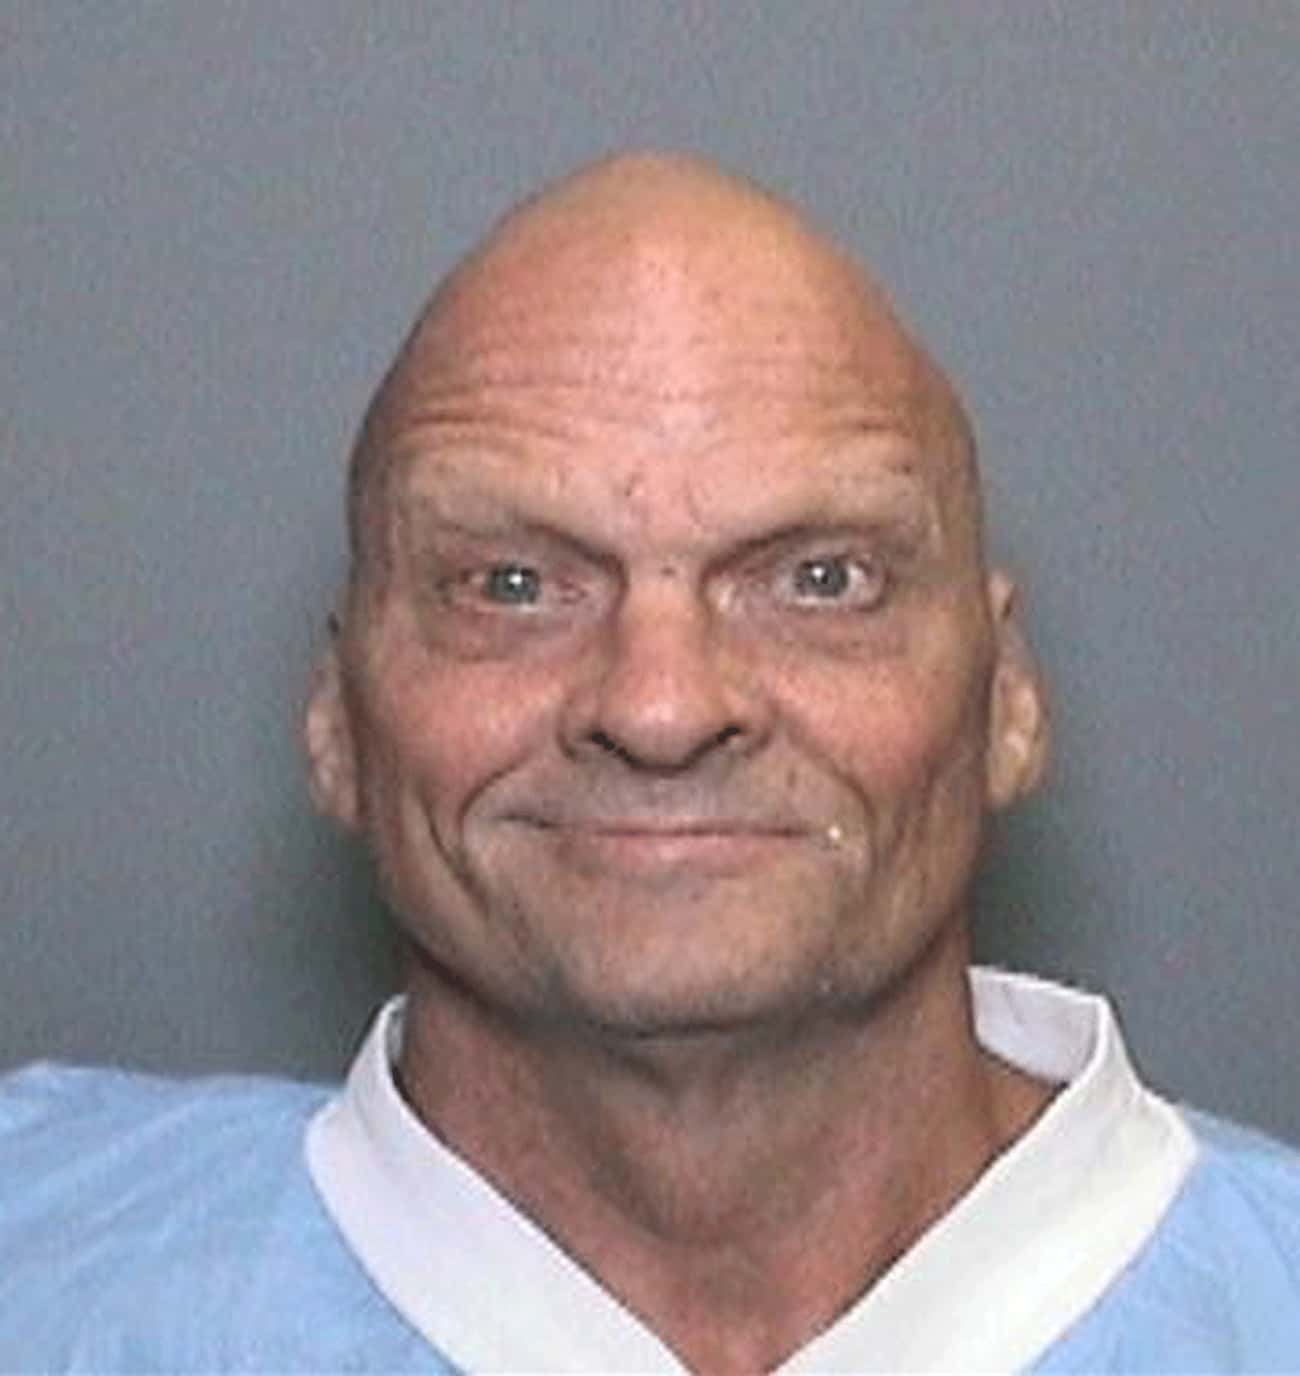 We Finally Caught Him: The Hum is listed (or ranked) 4 on the list The Creepiest (Funny) Mugshots Ever